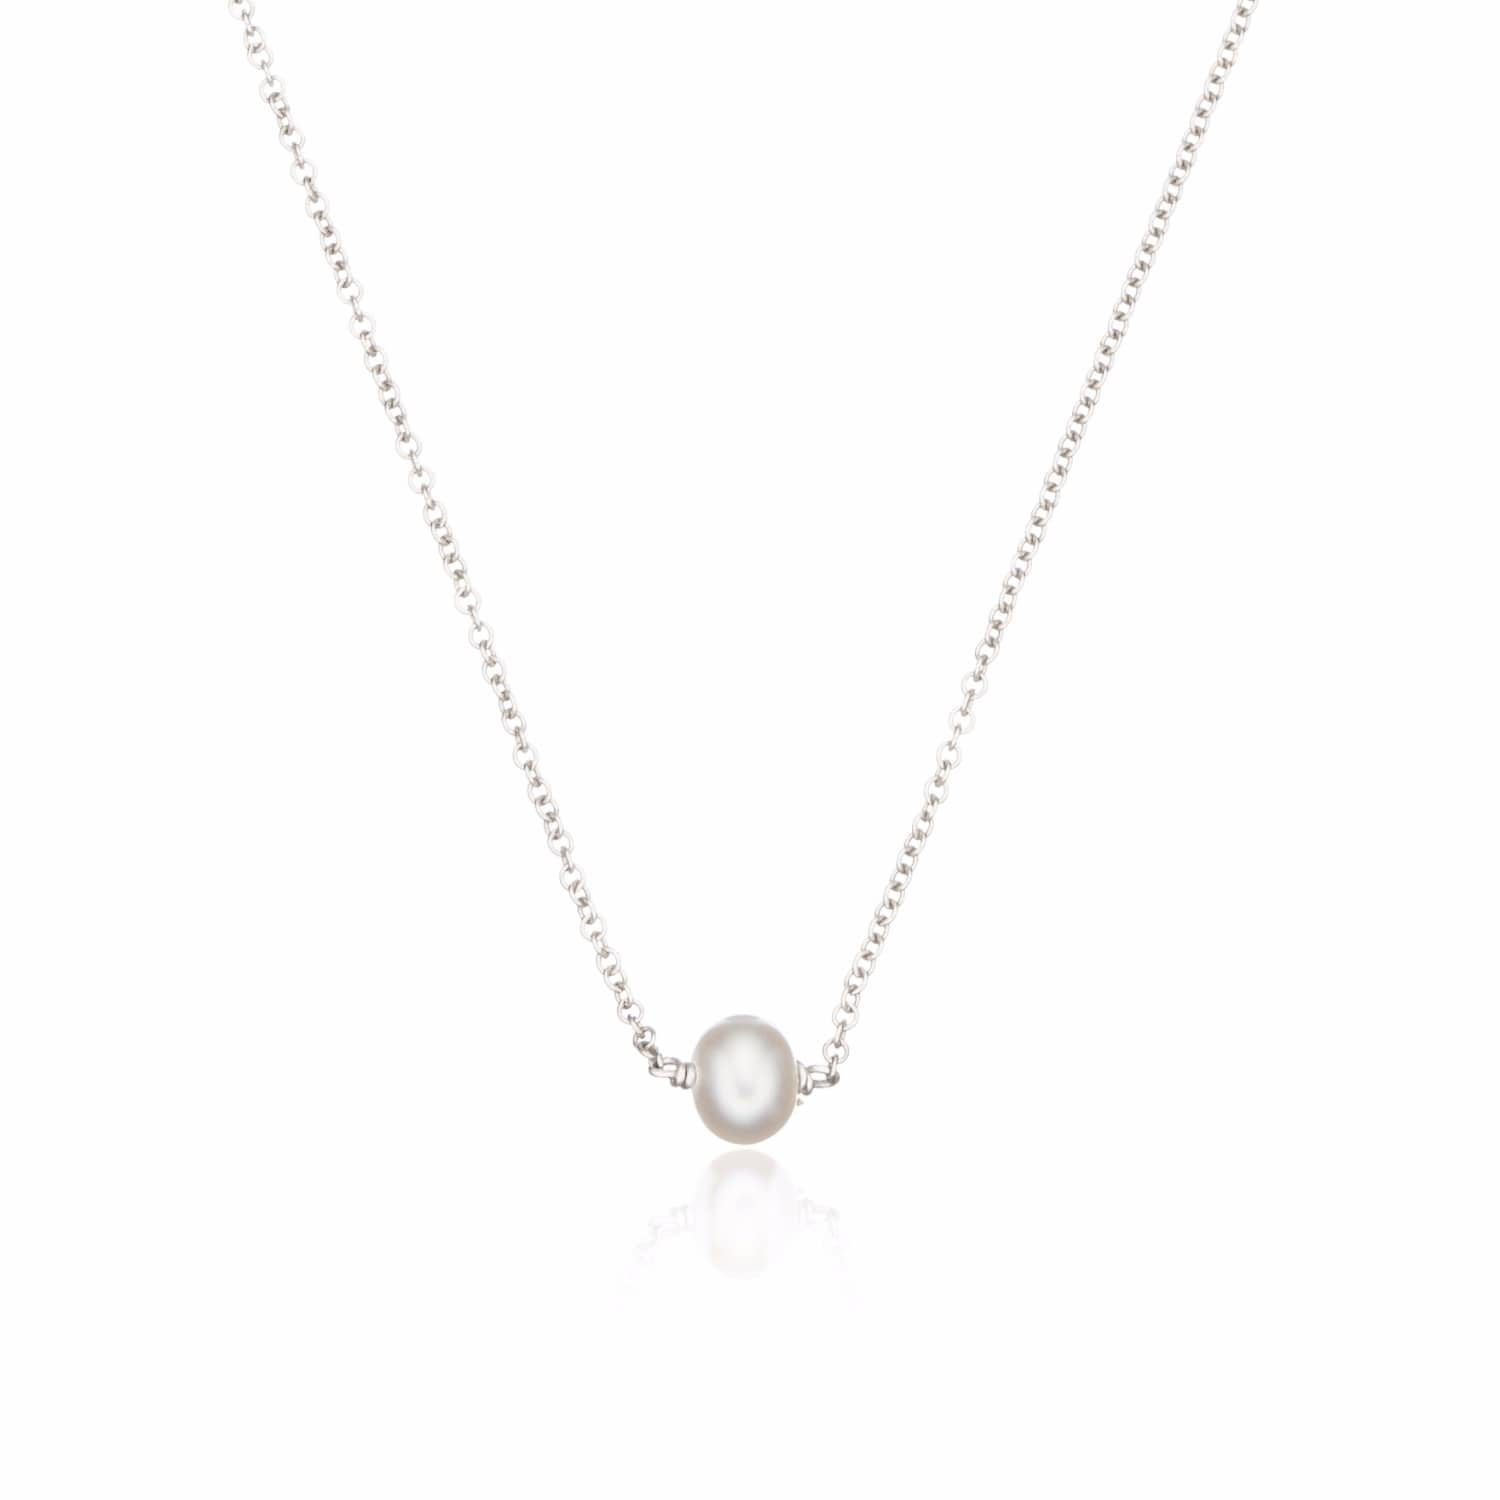 fi singlepearlblack shop single necklace pearl simple